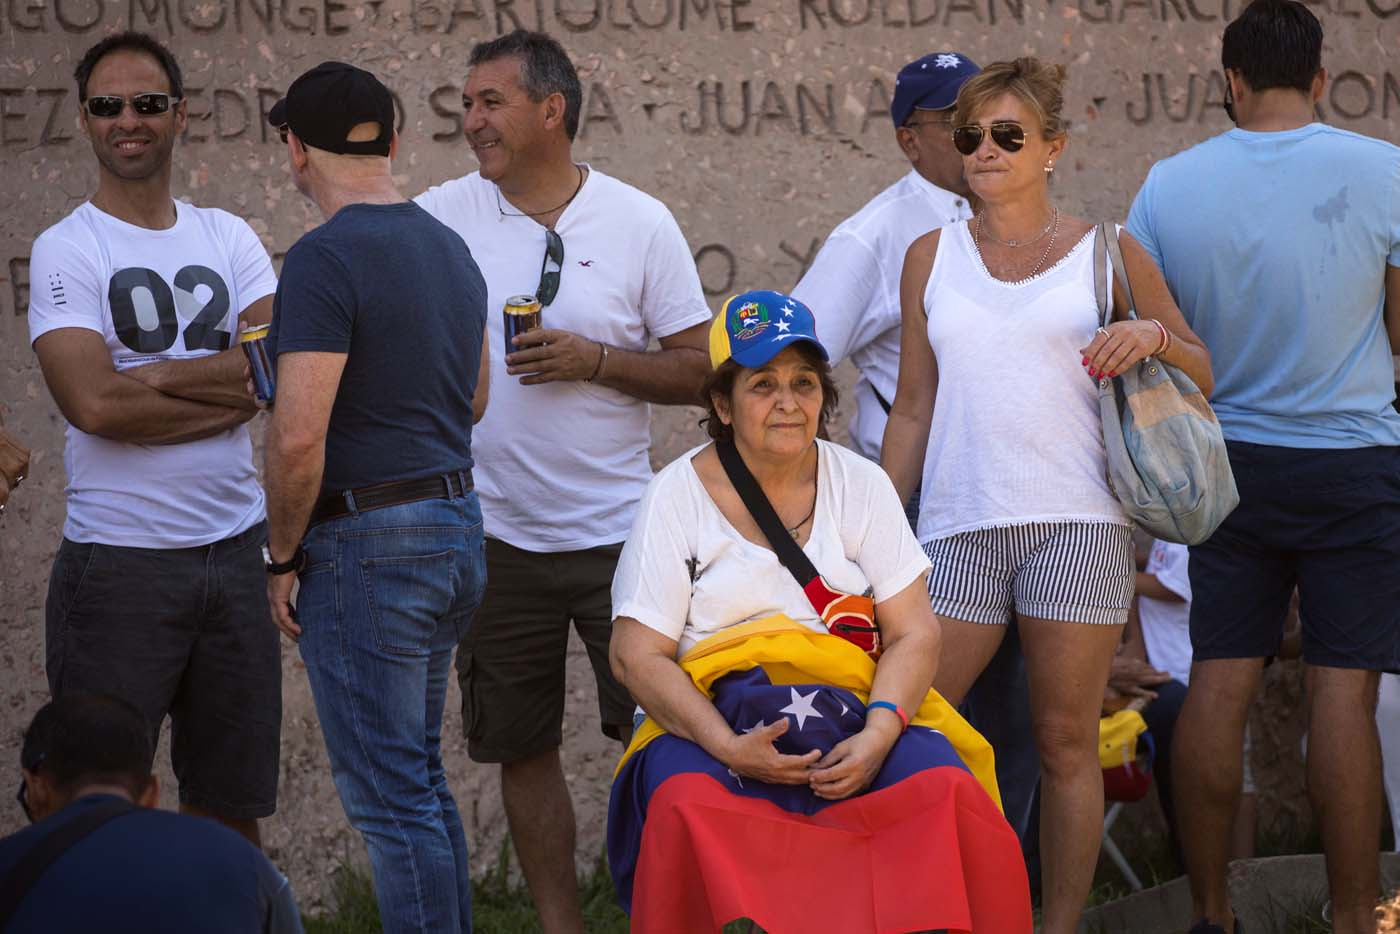 People wait to vote during an unofficial plebiscite against Venezuela's President Nicolas Maduro's government, in Madrid, Spain, July 16, 2017. REUTERS/Juan Medina